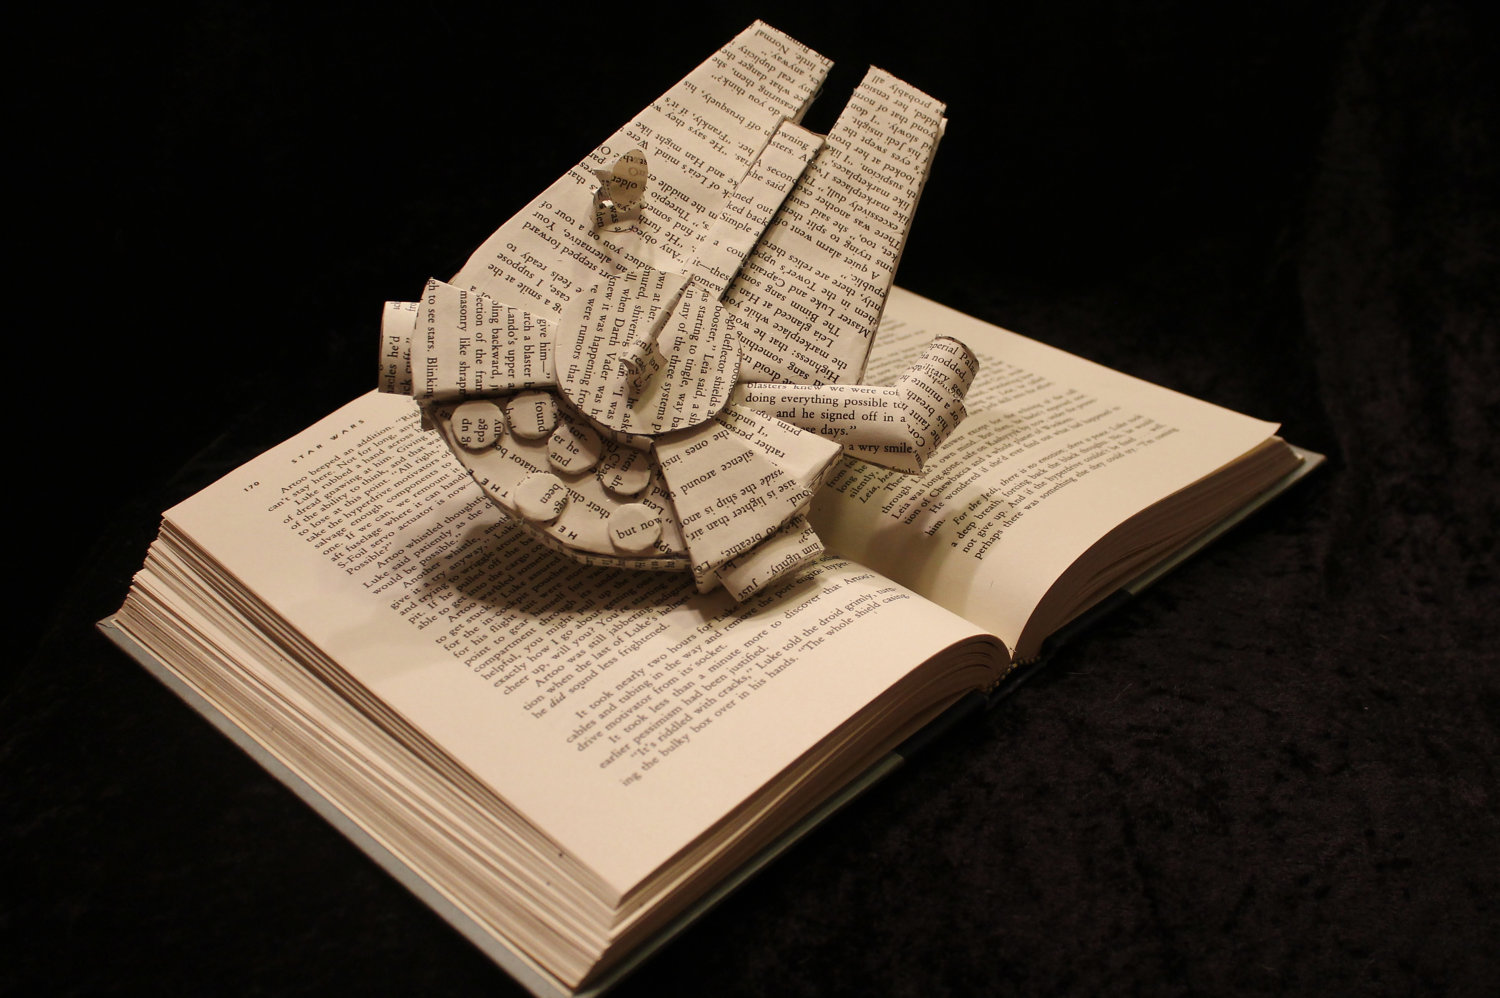 Photo of Les sculptures sur livres de l'artiste Jodi Harvey-Brown